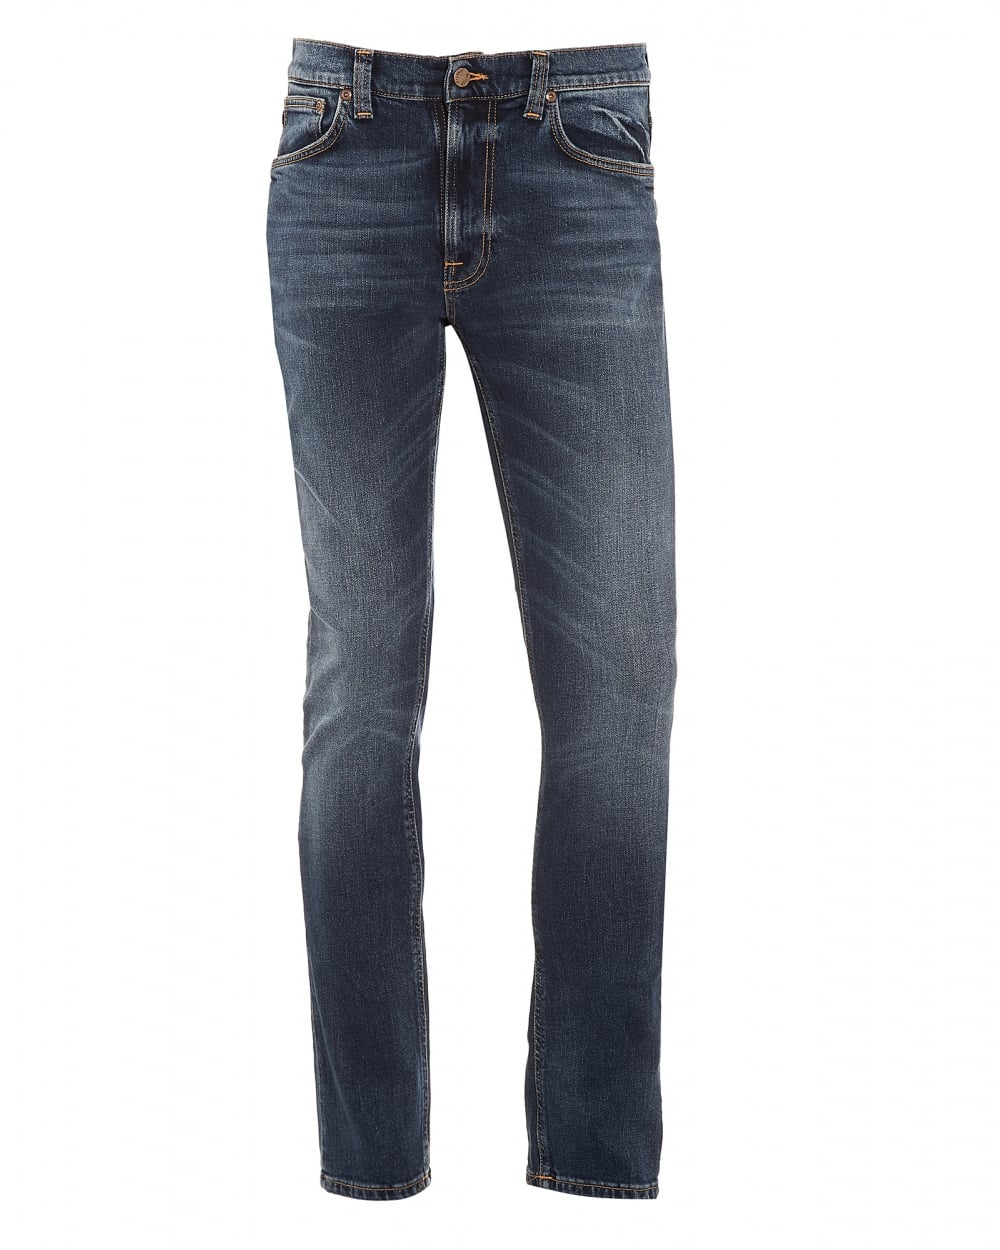 Free shipping and returns on Men's Dark Blue Wash Jeans & Denim at dexterminduwi.ga